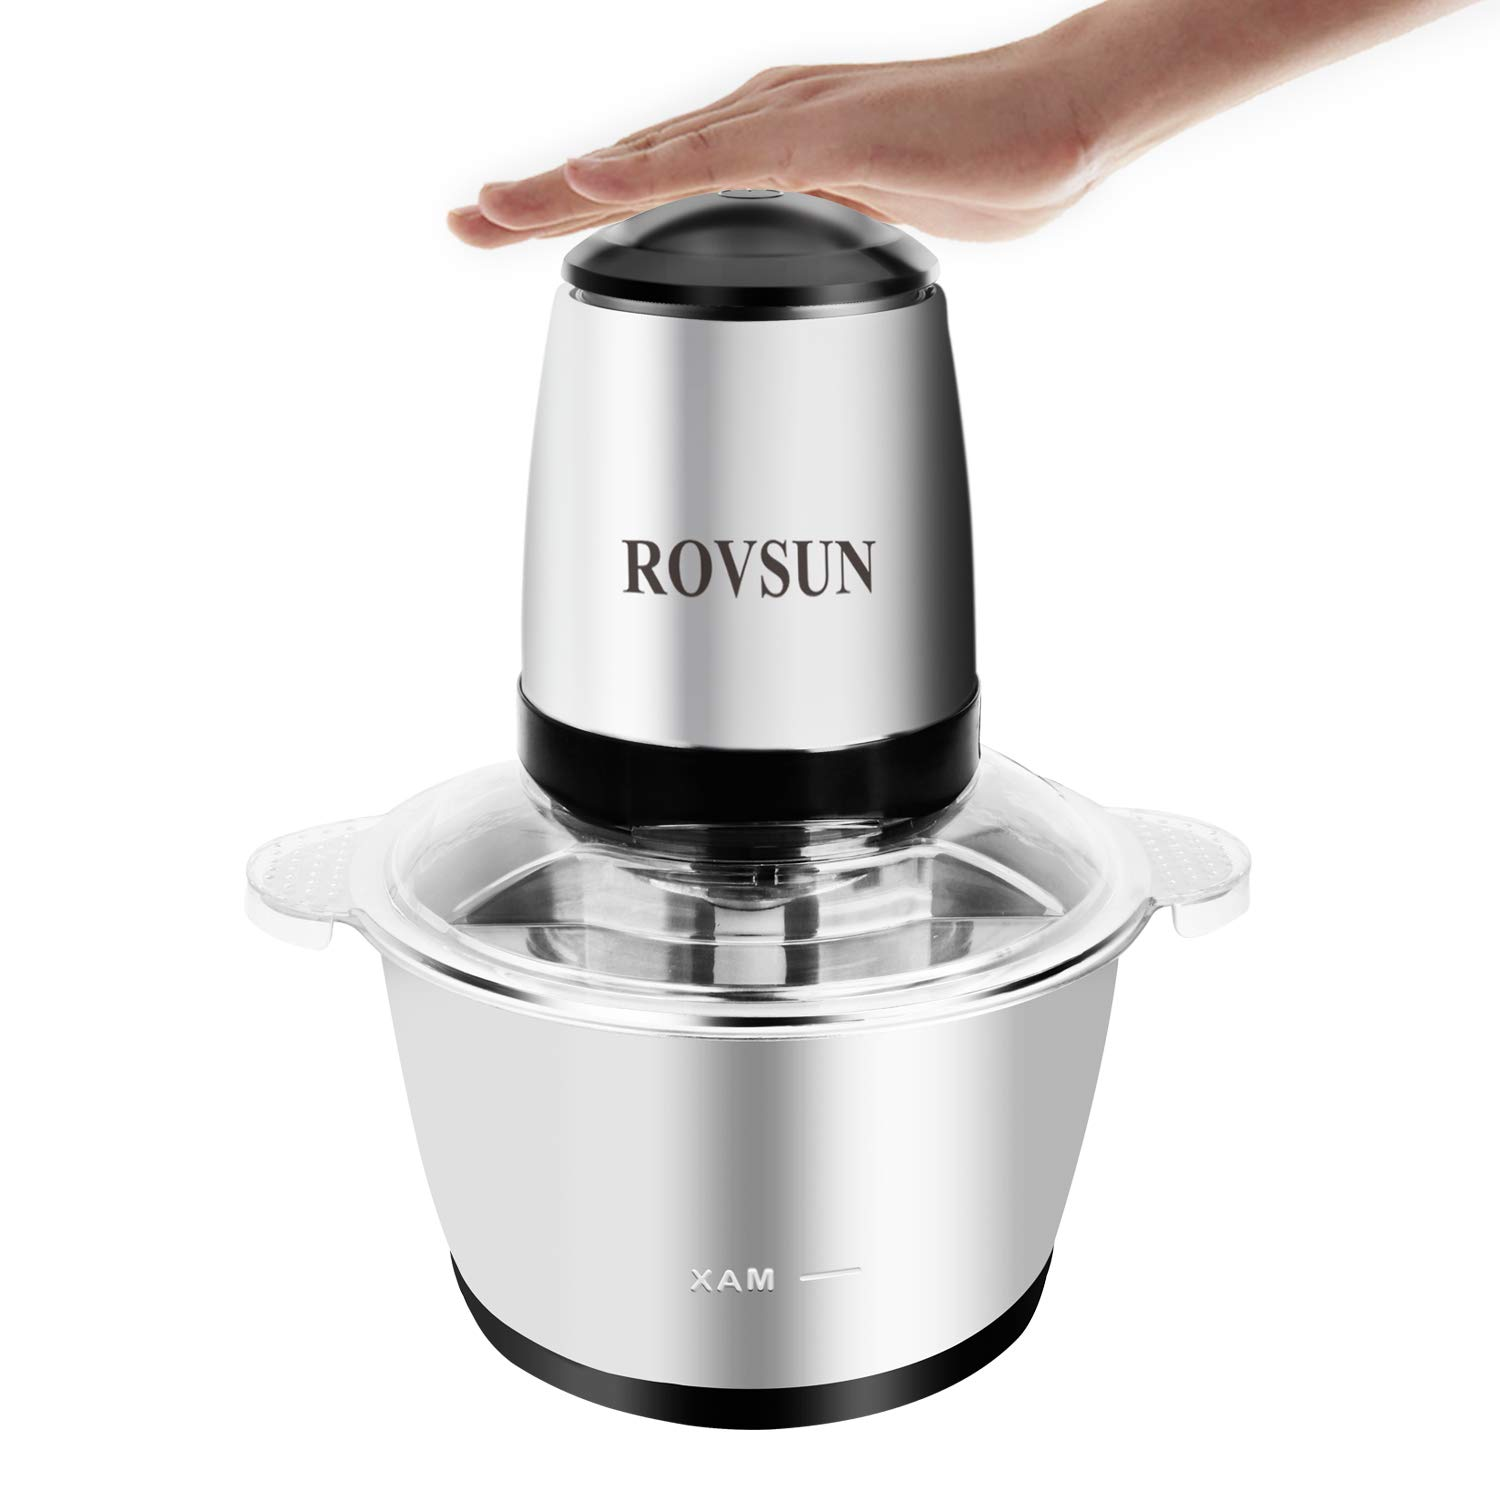 ROVSUN 8 Cup Food Processor Electric Mini Chopper 2L Stainless Steel Bowl, One Touch Multipurpose Kitchen Onion Fruit Vegetable Mincer,300W Blender Slicer Dicer with 4 Blades (Silver)